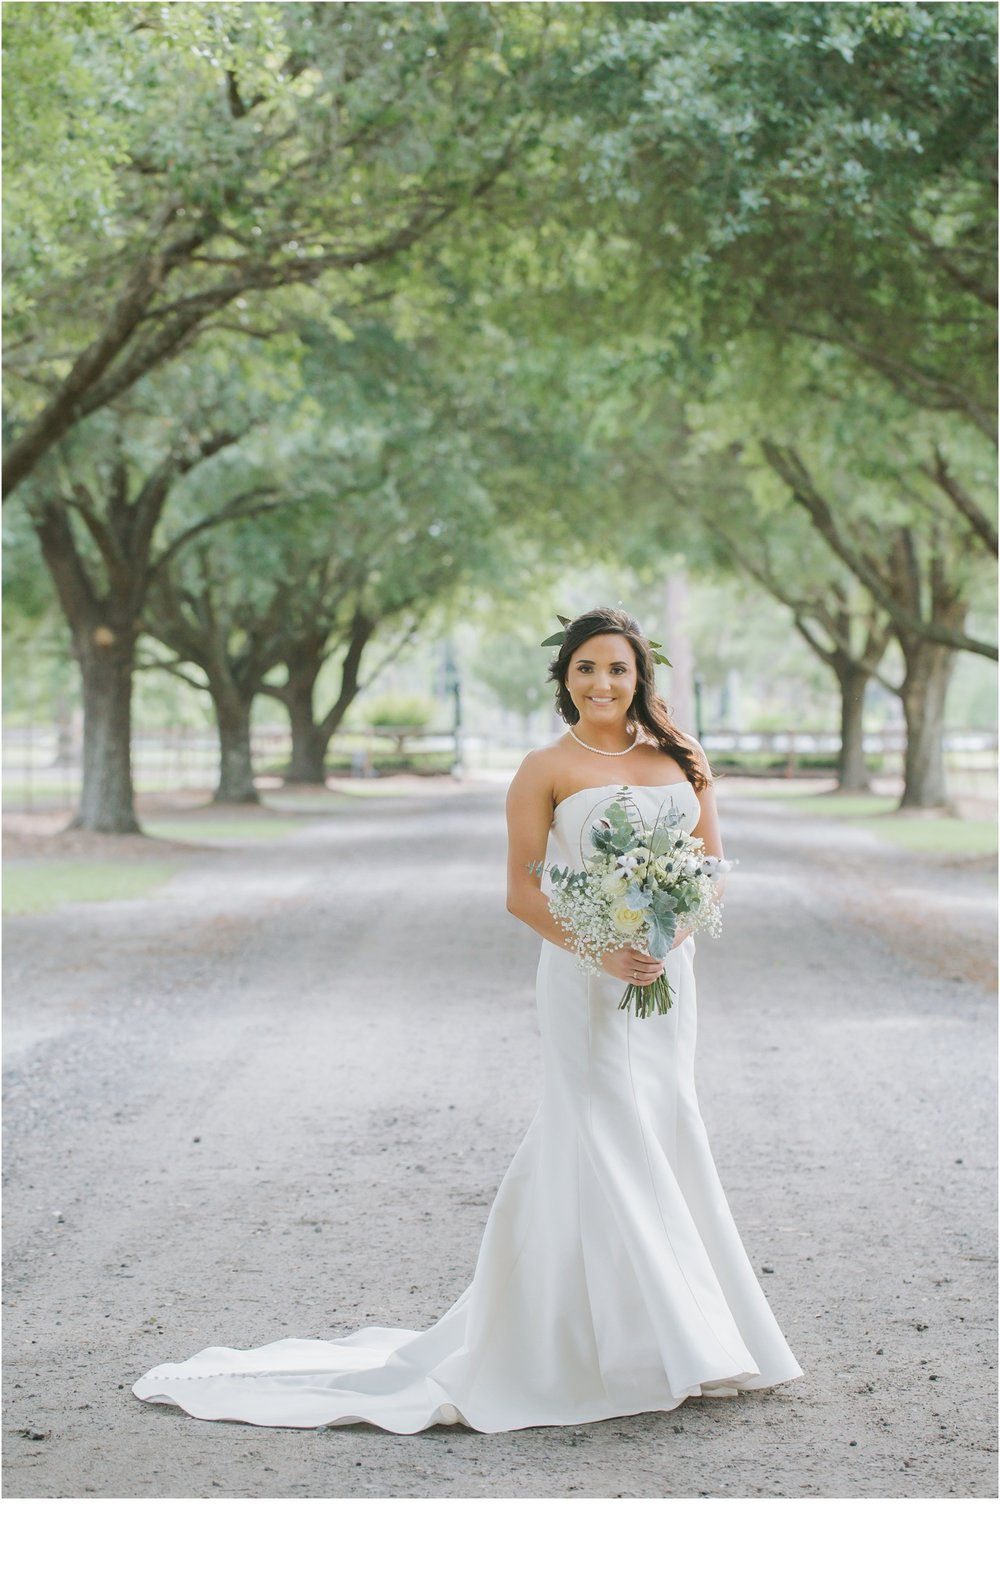 Rainey_Gregg_Photography_St._Simons_Island_Georgia_California_Wedding_Portrait_Photography_0918.jpg